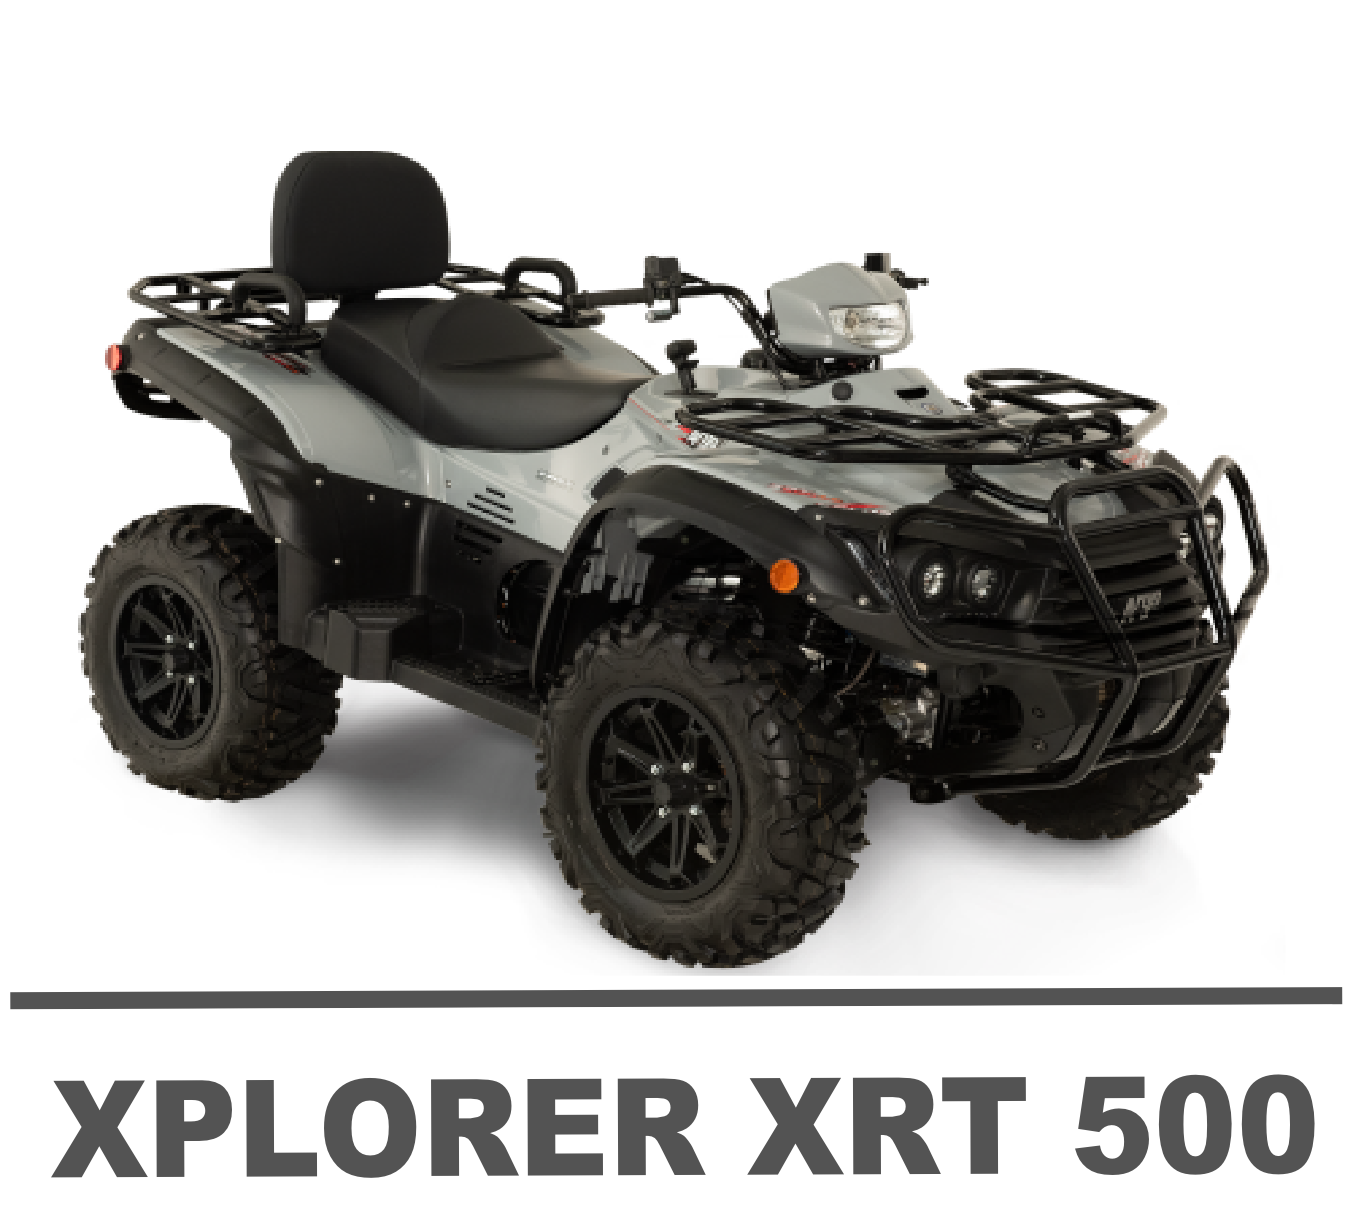 ARGO XPLORER XRT 500 MANUALS